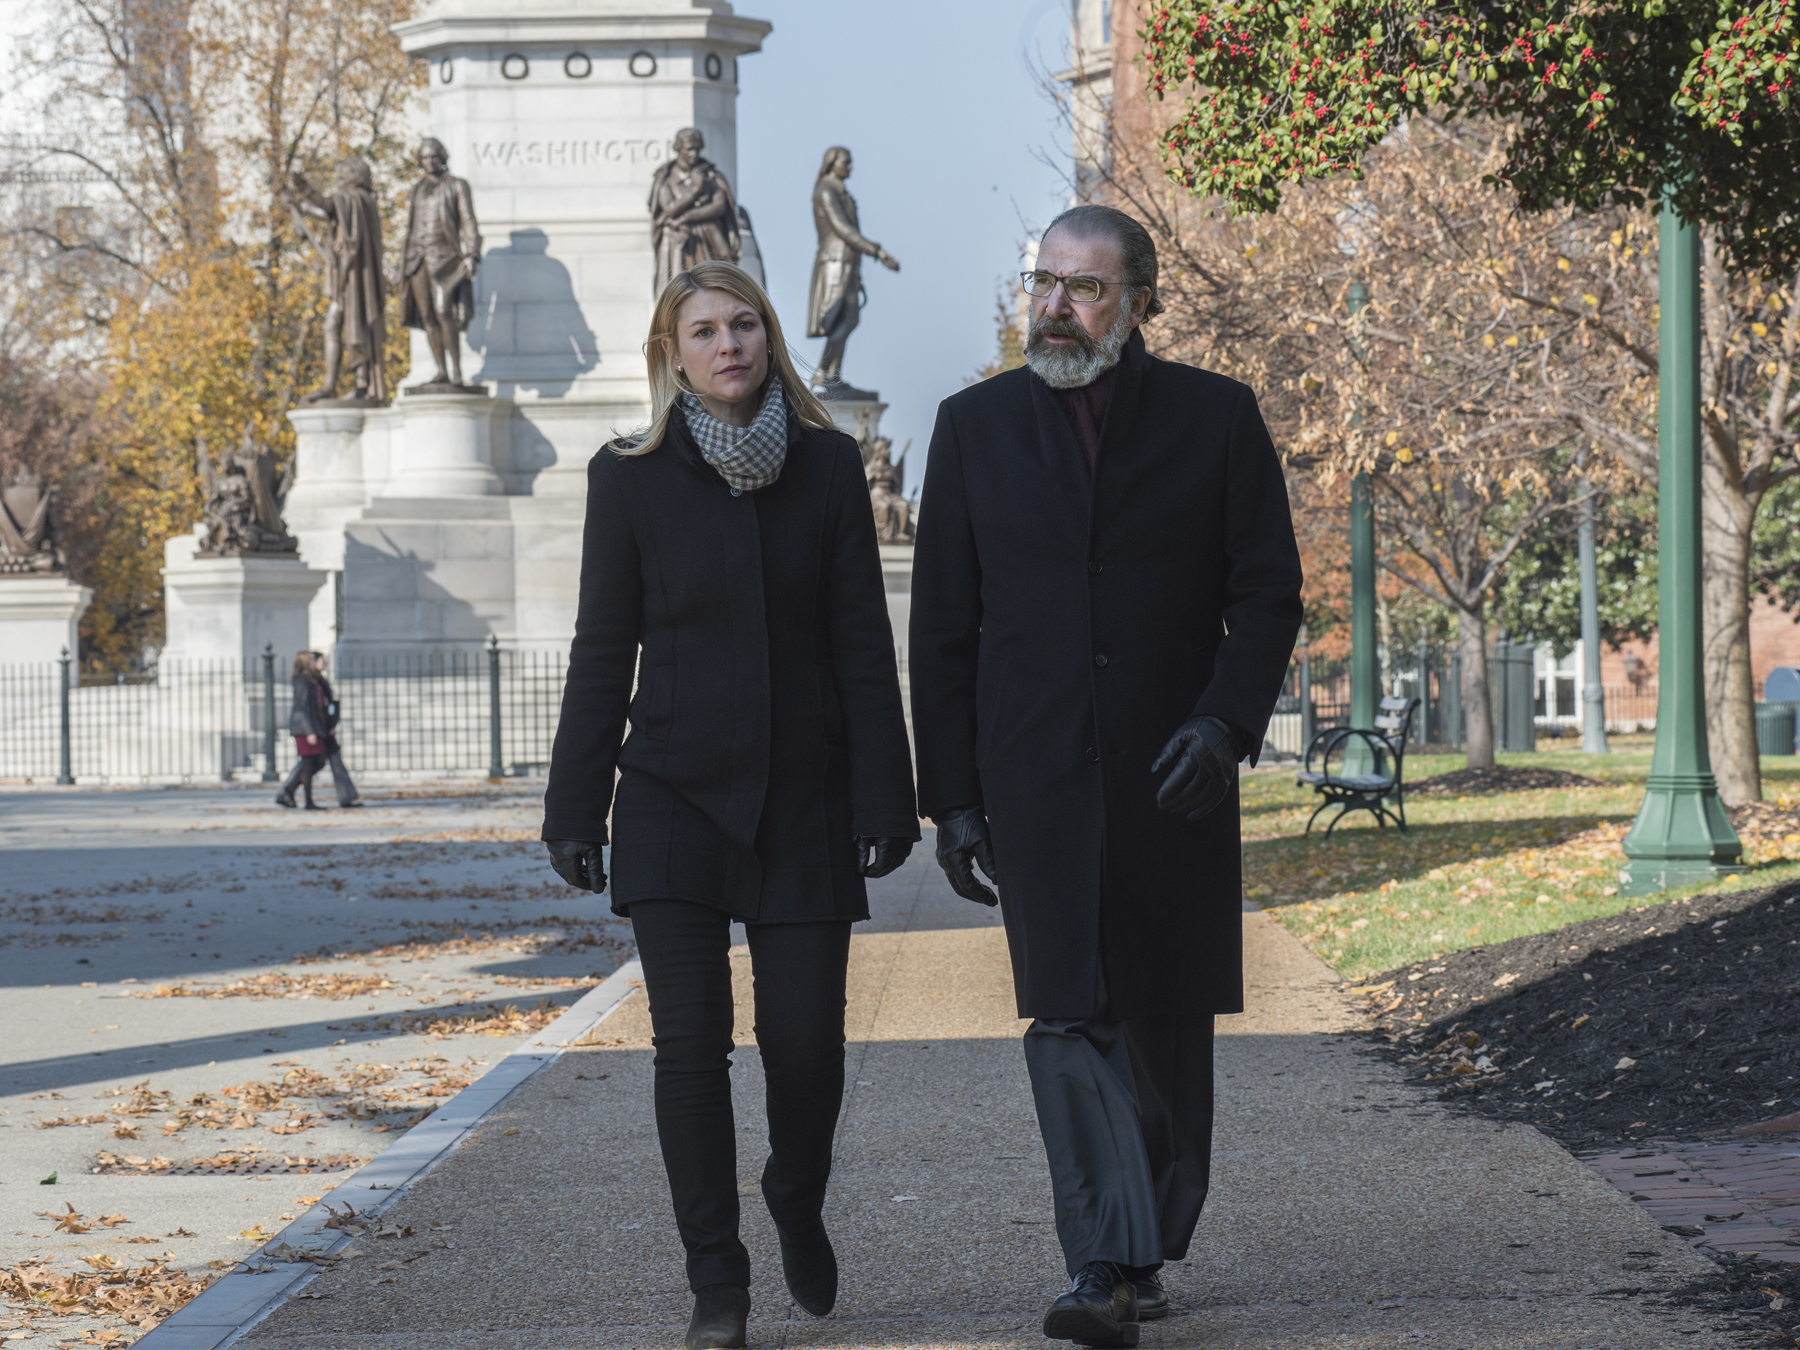 Claire Danes as Carrie Mathison and Mandy Patinkin as Saul Berenson in HOMELAND (Season 7, Episode 06). - Photo: Antony Platt/SHOWTIME